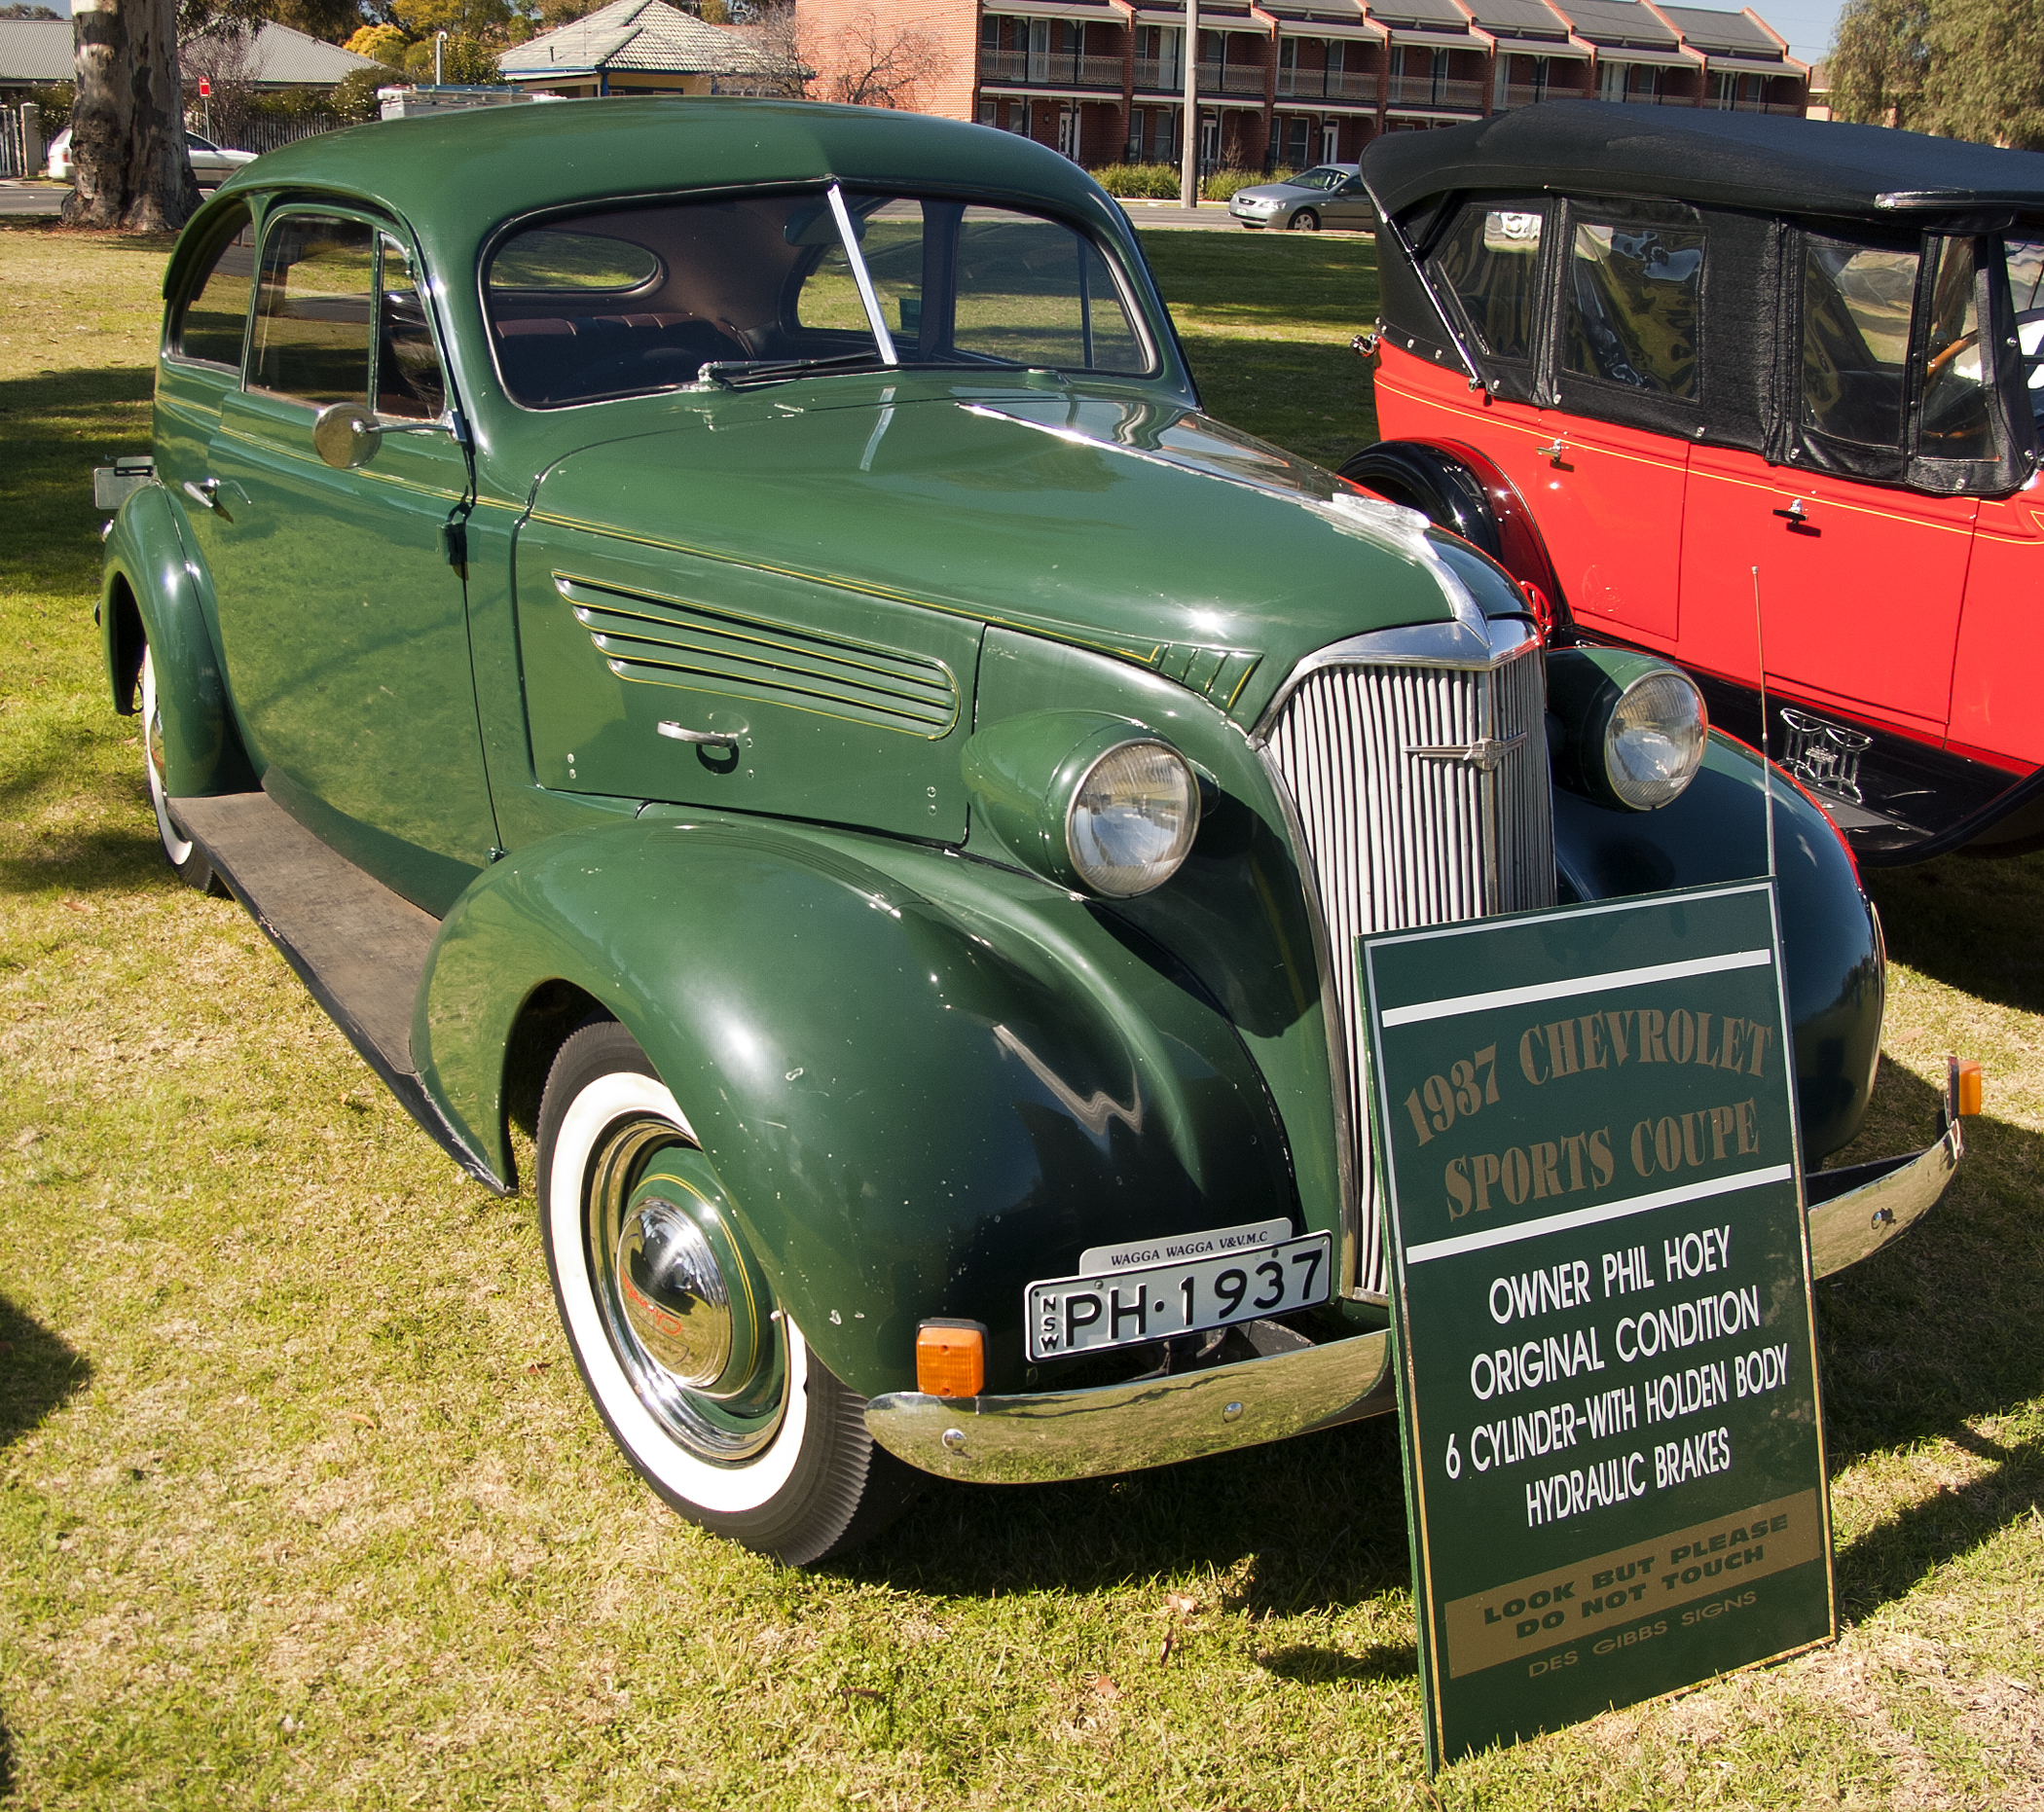 File:1937 Chevrolet Sports Coupe.jpg - Wikimedia Commons